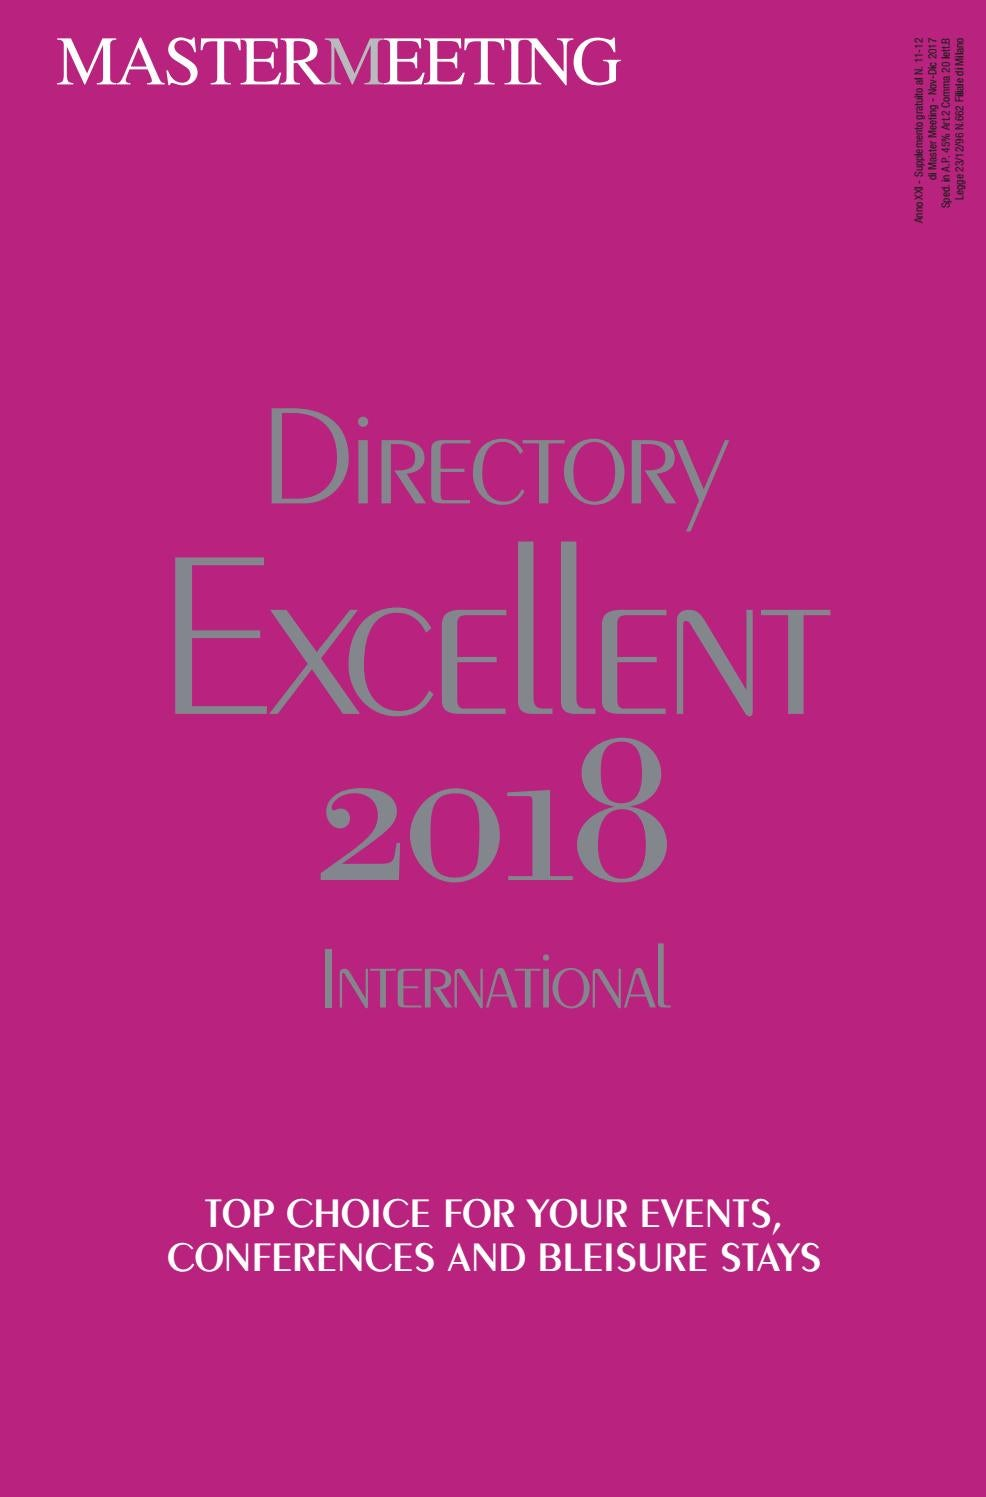 Directory Excellent 2018 by Master Meeting - issuu 4a24be6c6da